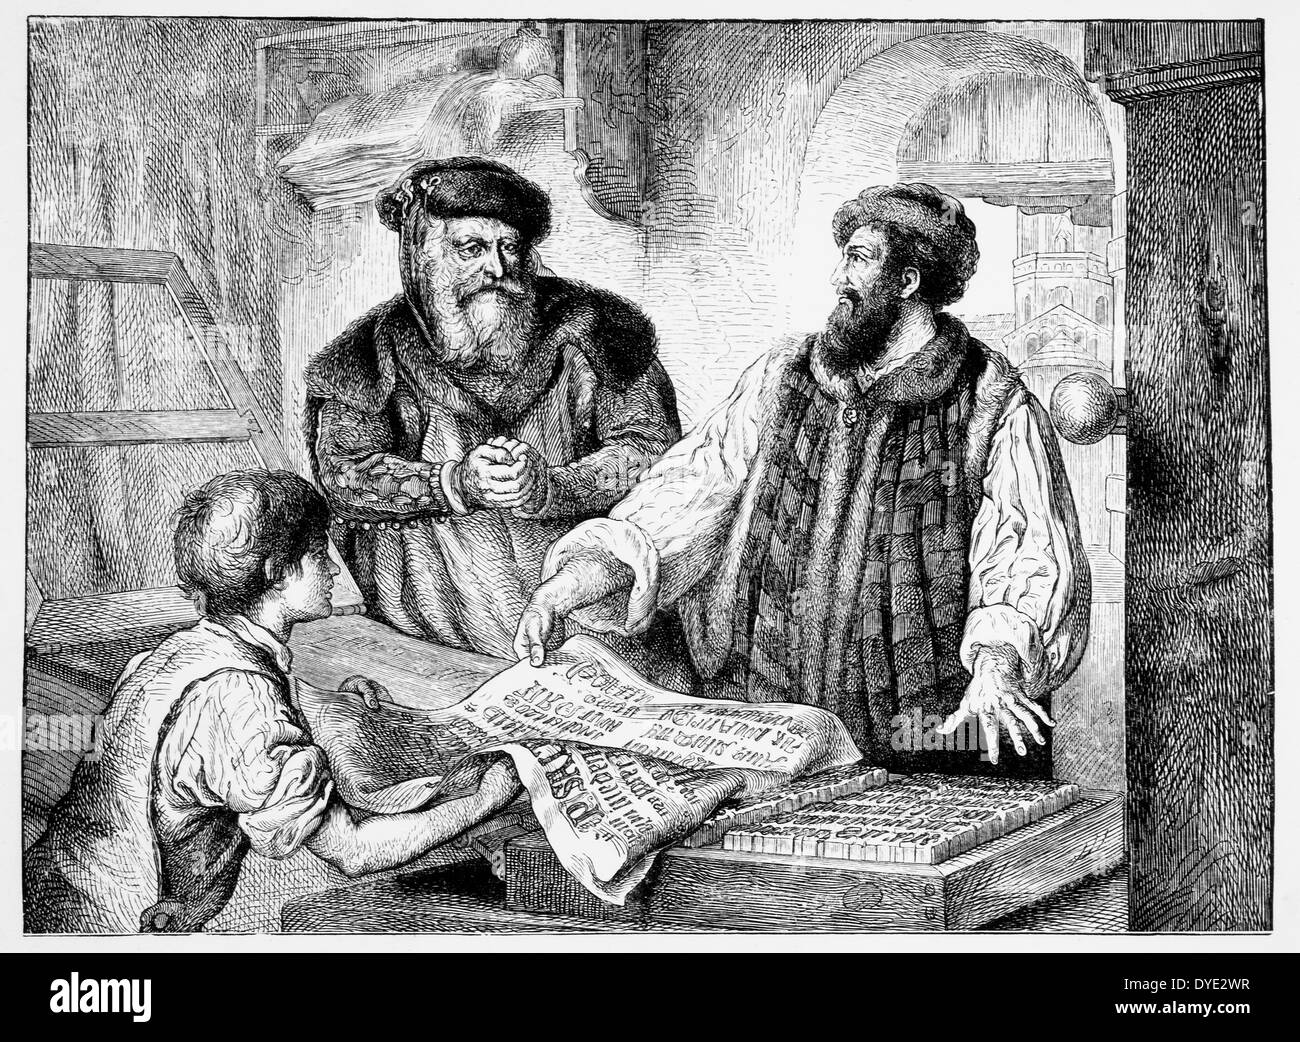 johannes gutenberg and the printing press essay Free essay on johann gutenberg and the invention of the printing press available totally free at echeatcom, the largest free essay community.